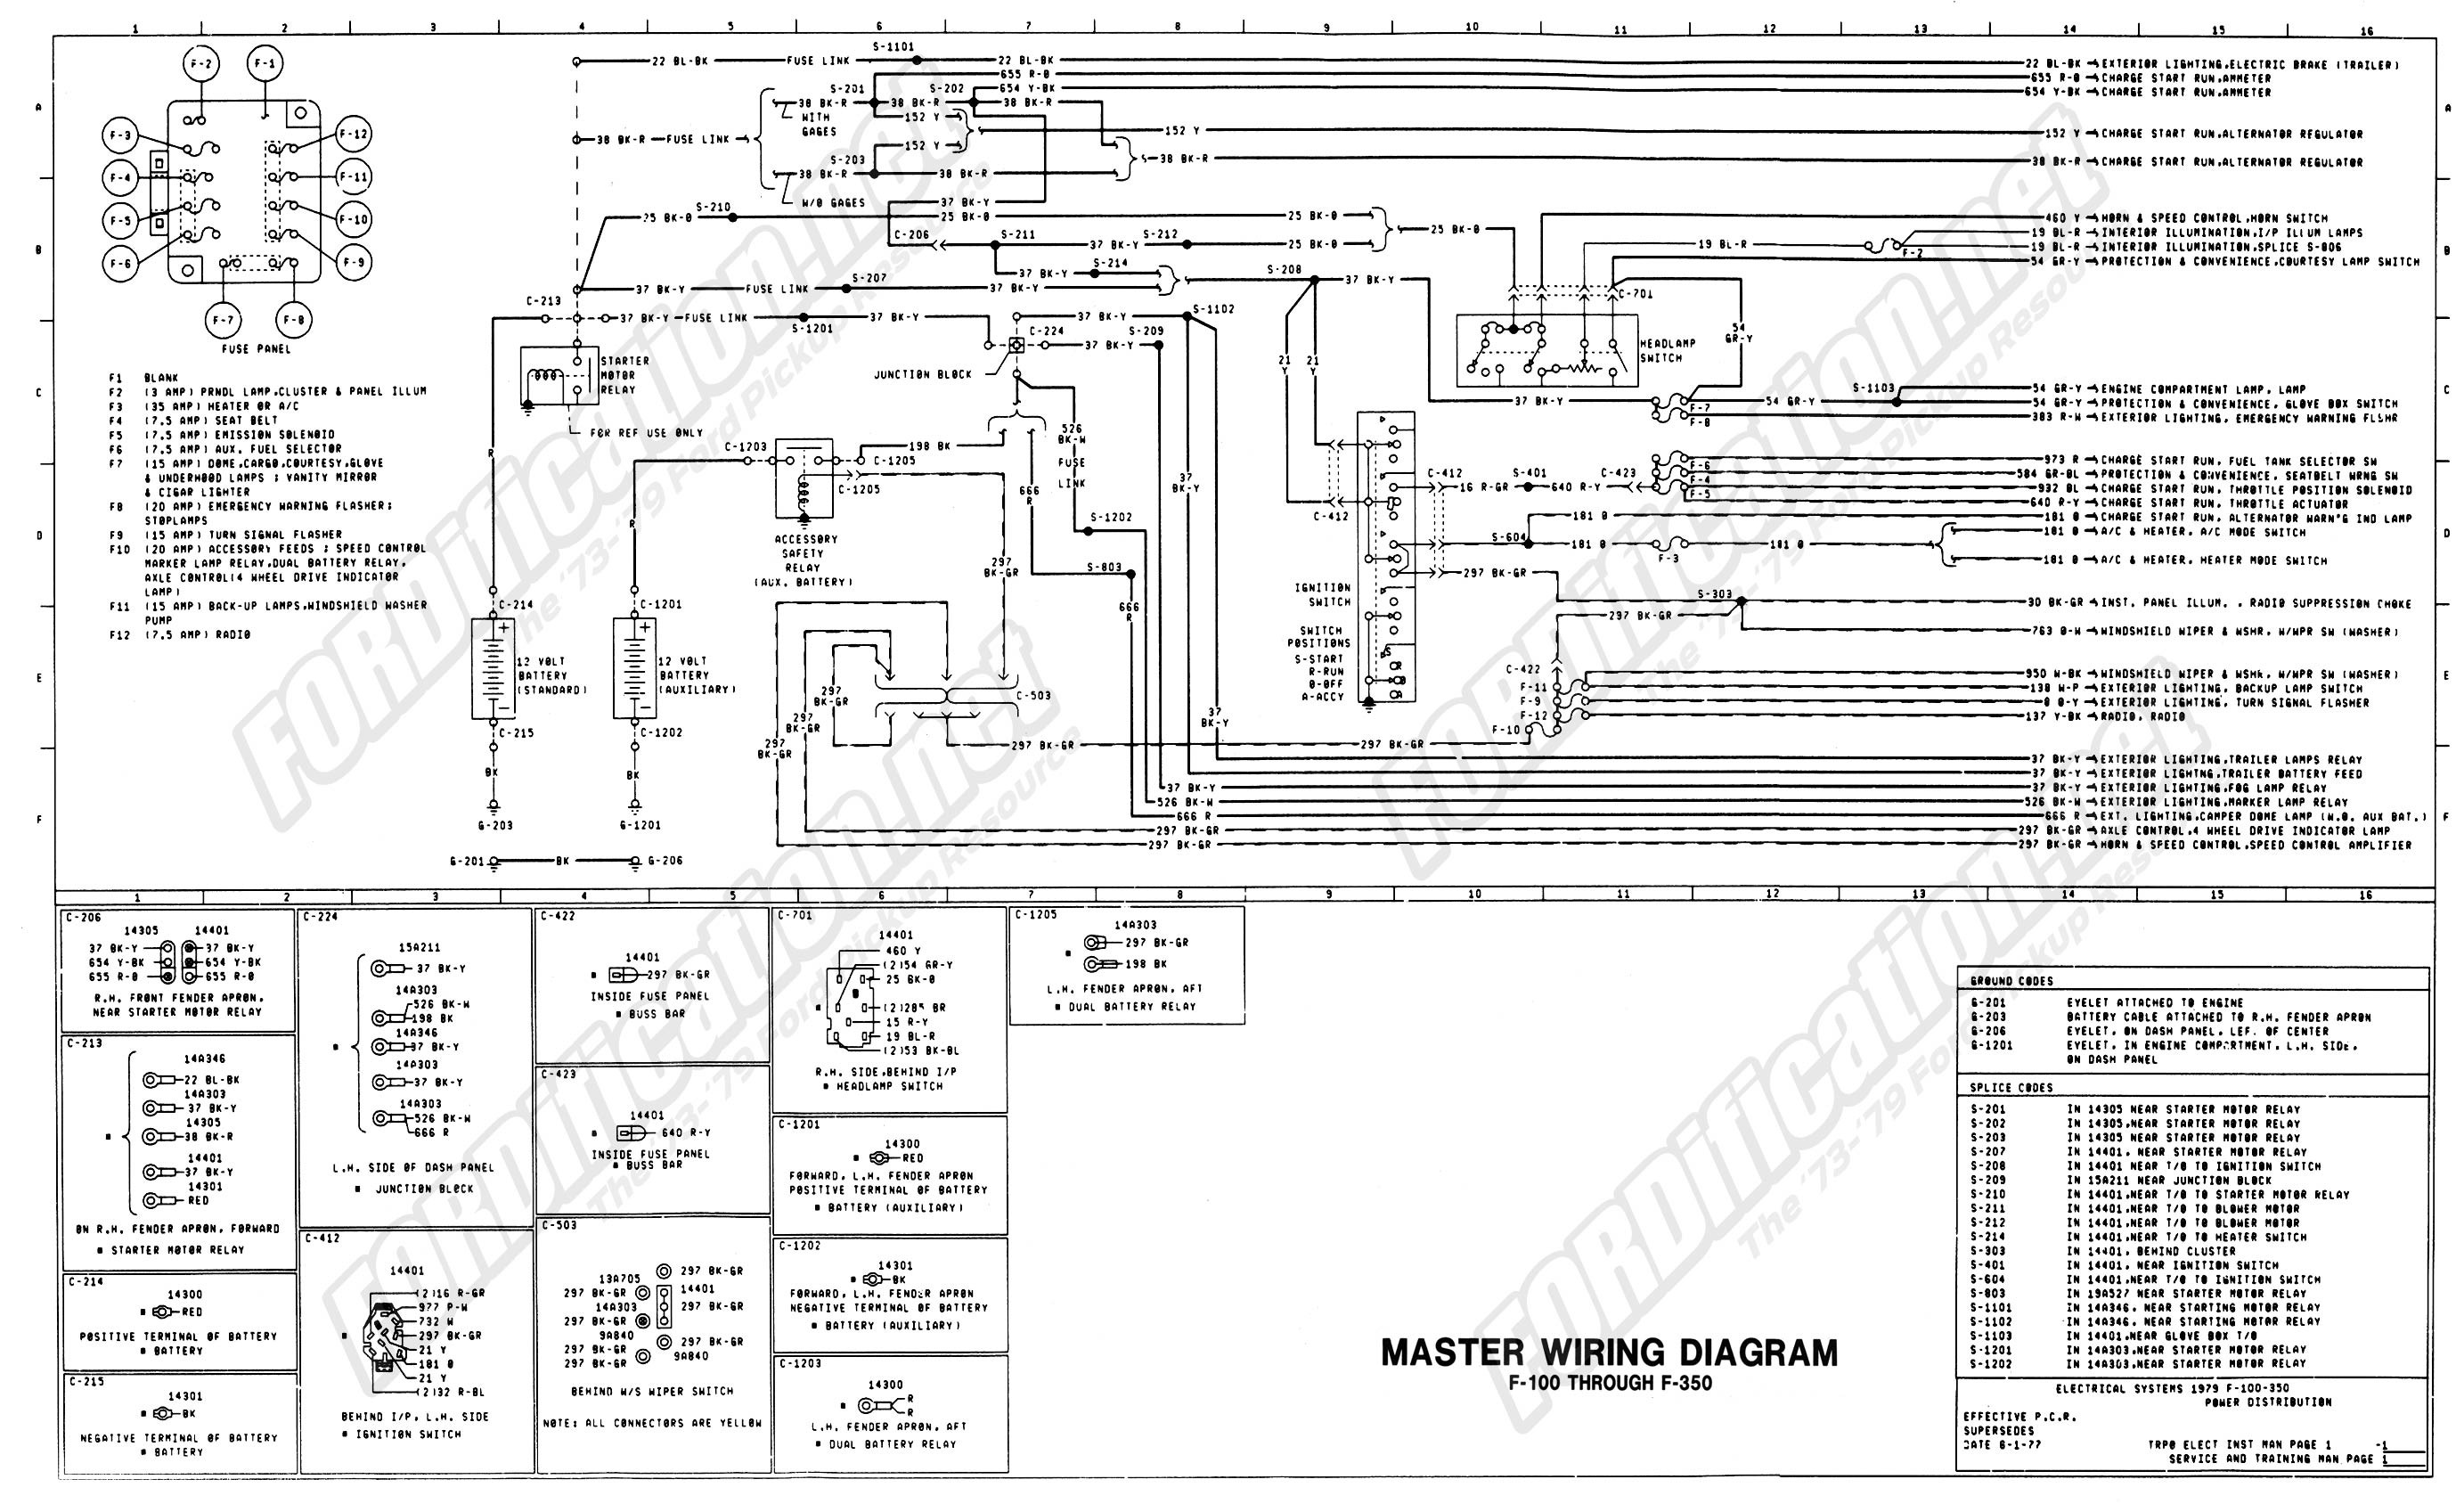 2003 thunderbird fuse box basic electronics wiring diagram 1990 Thunderbird 1970 ford fuse box eyo jenouson uk \\u20221970 ford fuse box wiring diagram rh 56